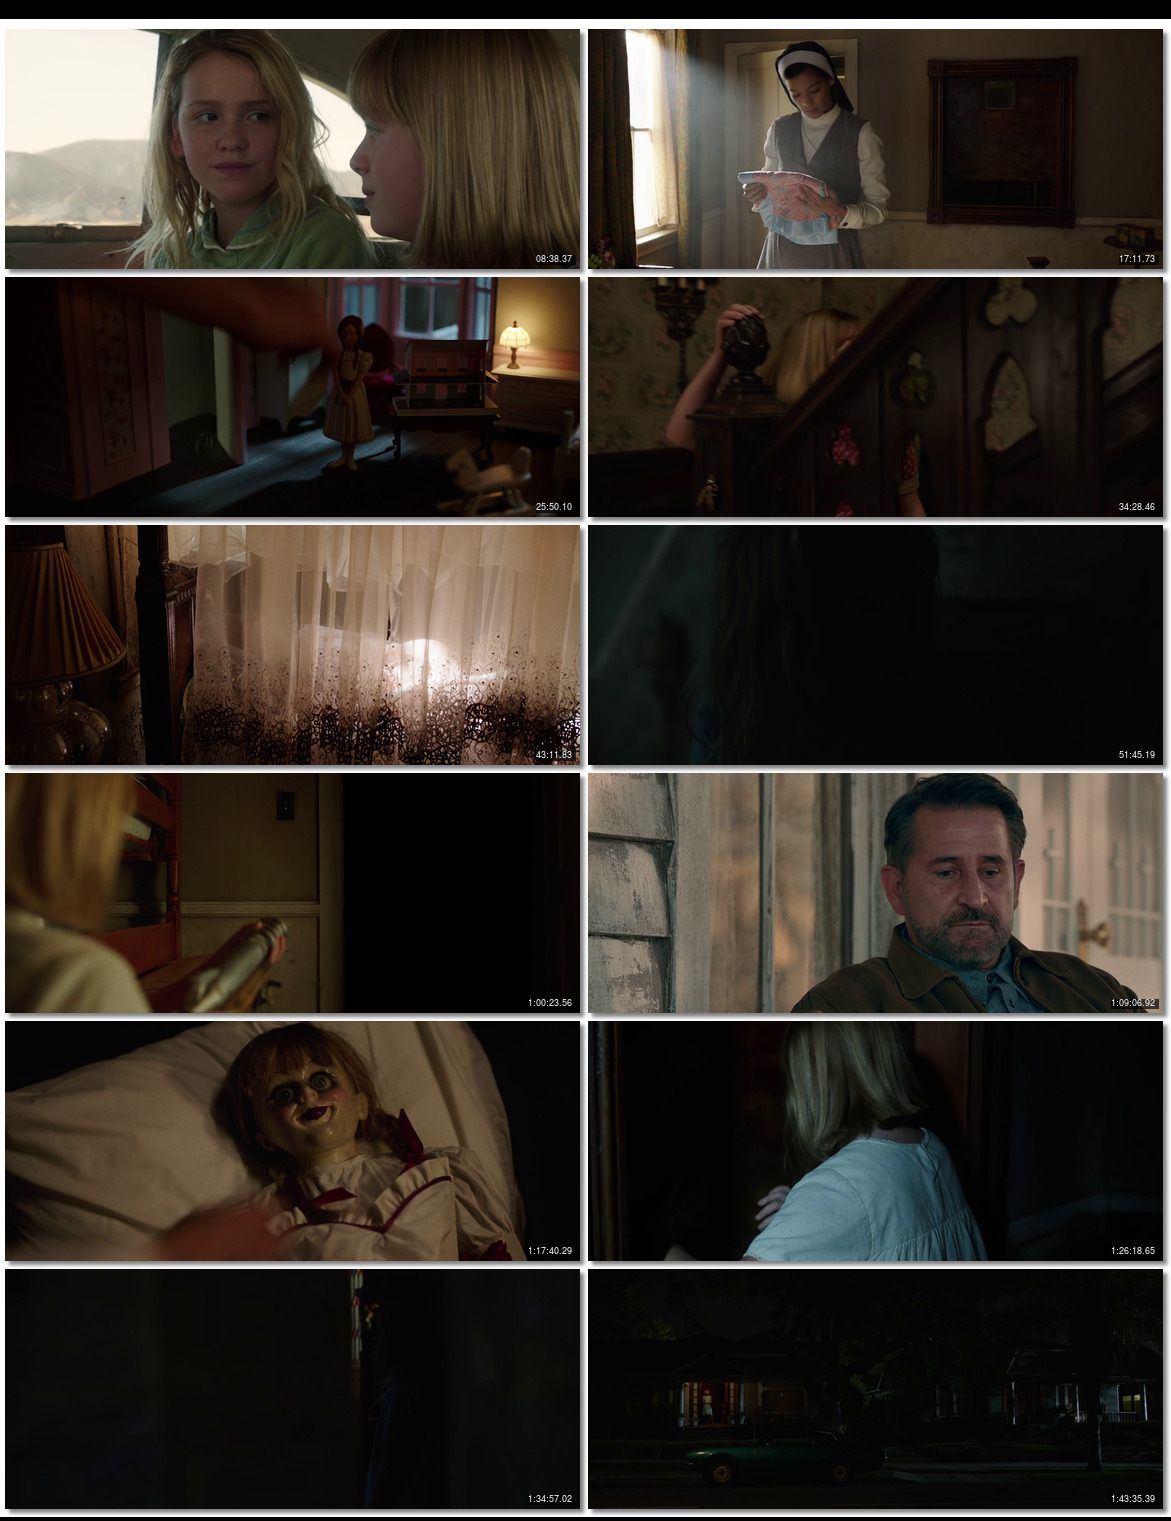 Annabelle Creations 2017 Dual Audio Hd 720p Bluray Dualdlcom